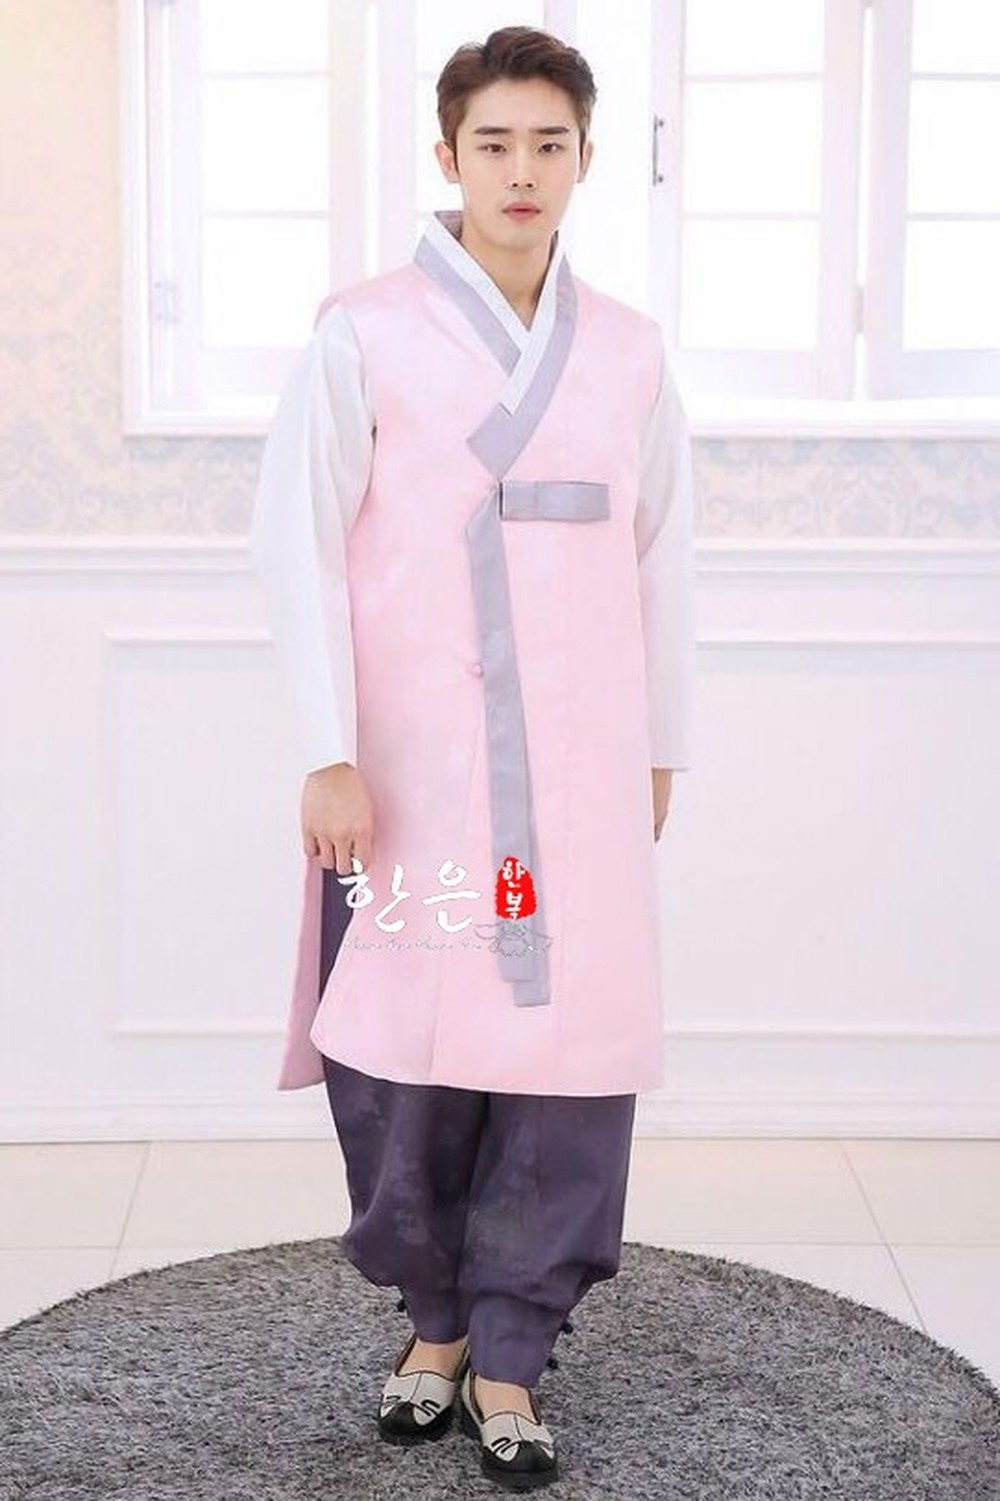 South Korea Imported Korean Clothing Fabric/Bridegroom Korean Clothing/Men's Korean Clothing/New Korean Clothing /HE-NS1202